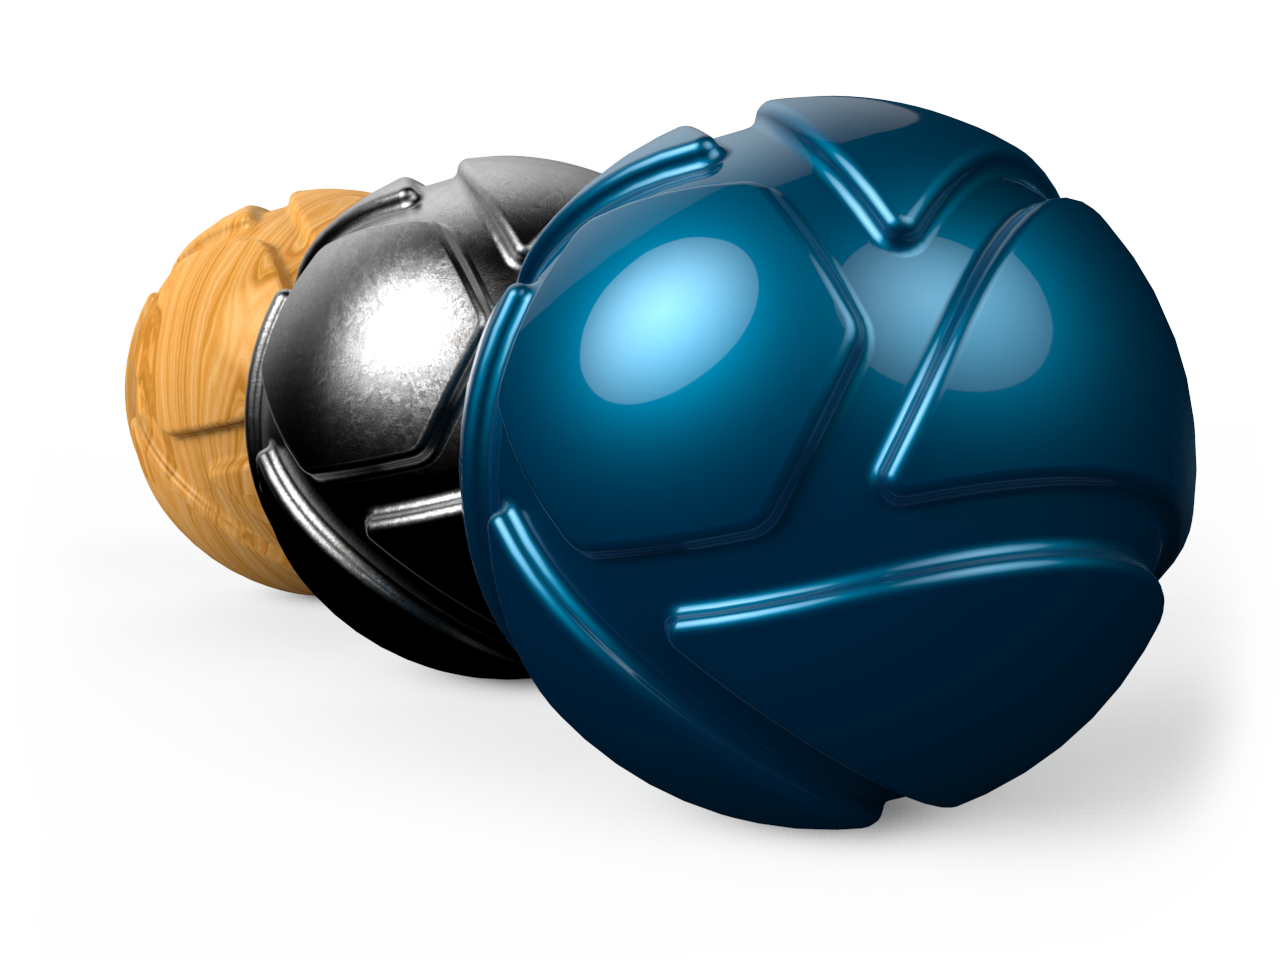 KeyShot 5 Material Ball